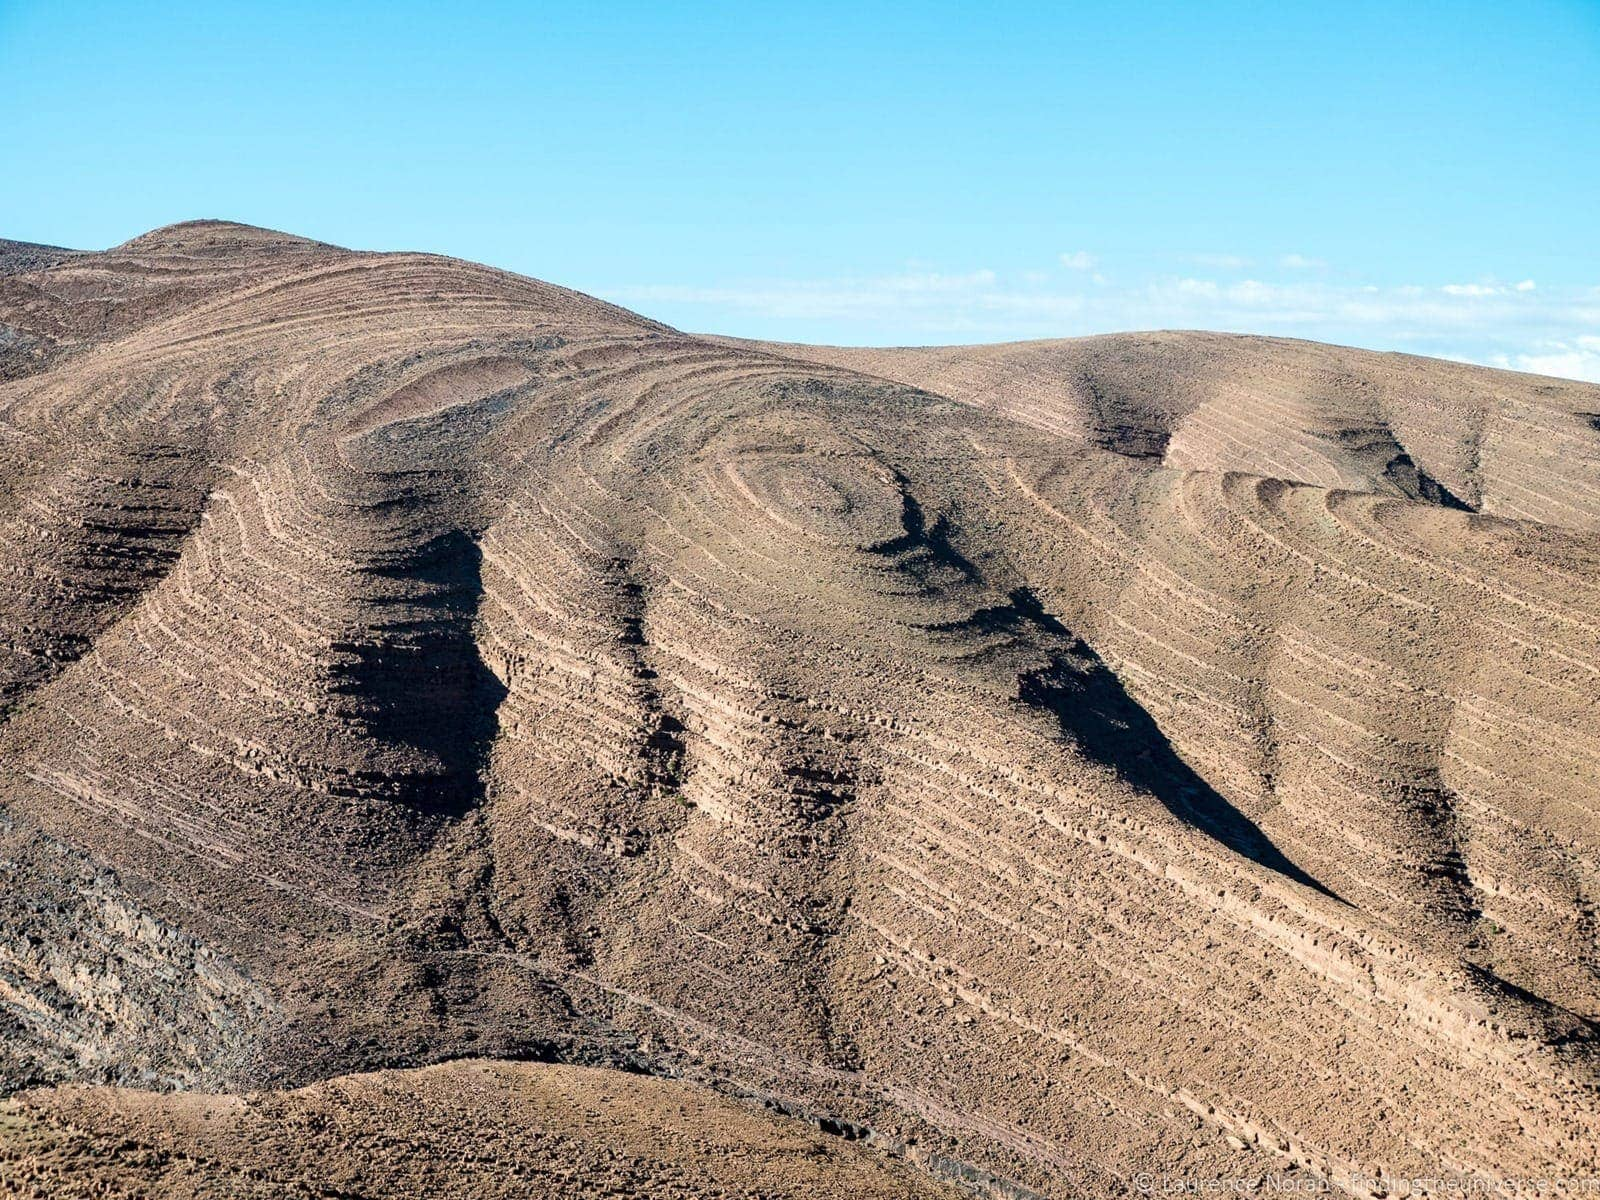 Contour lines in the ground Atlas Mountains Morocco